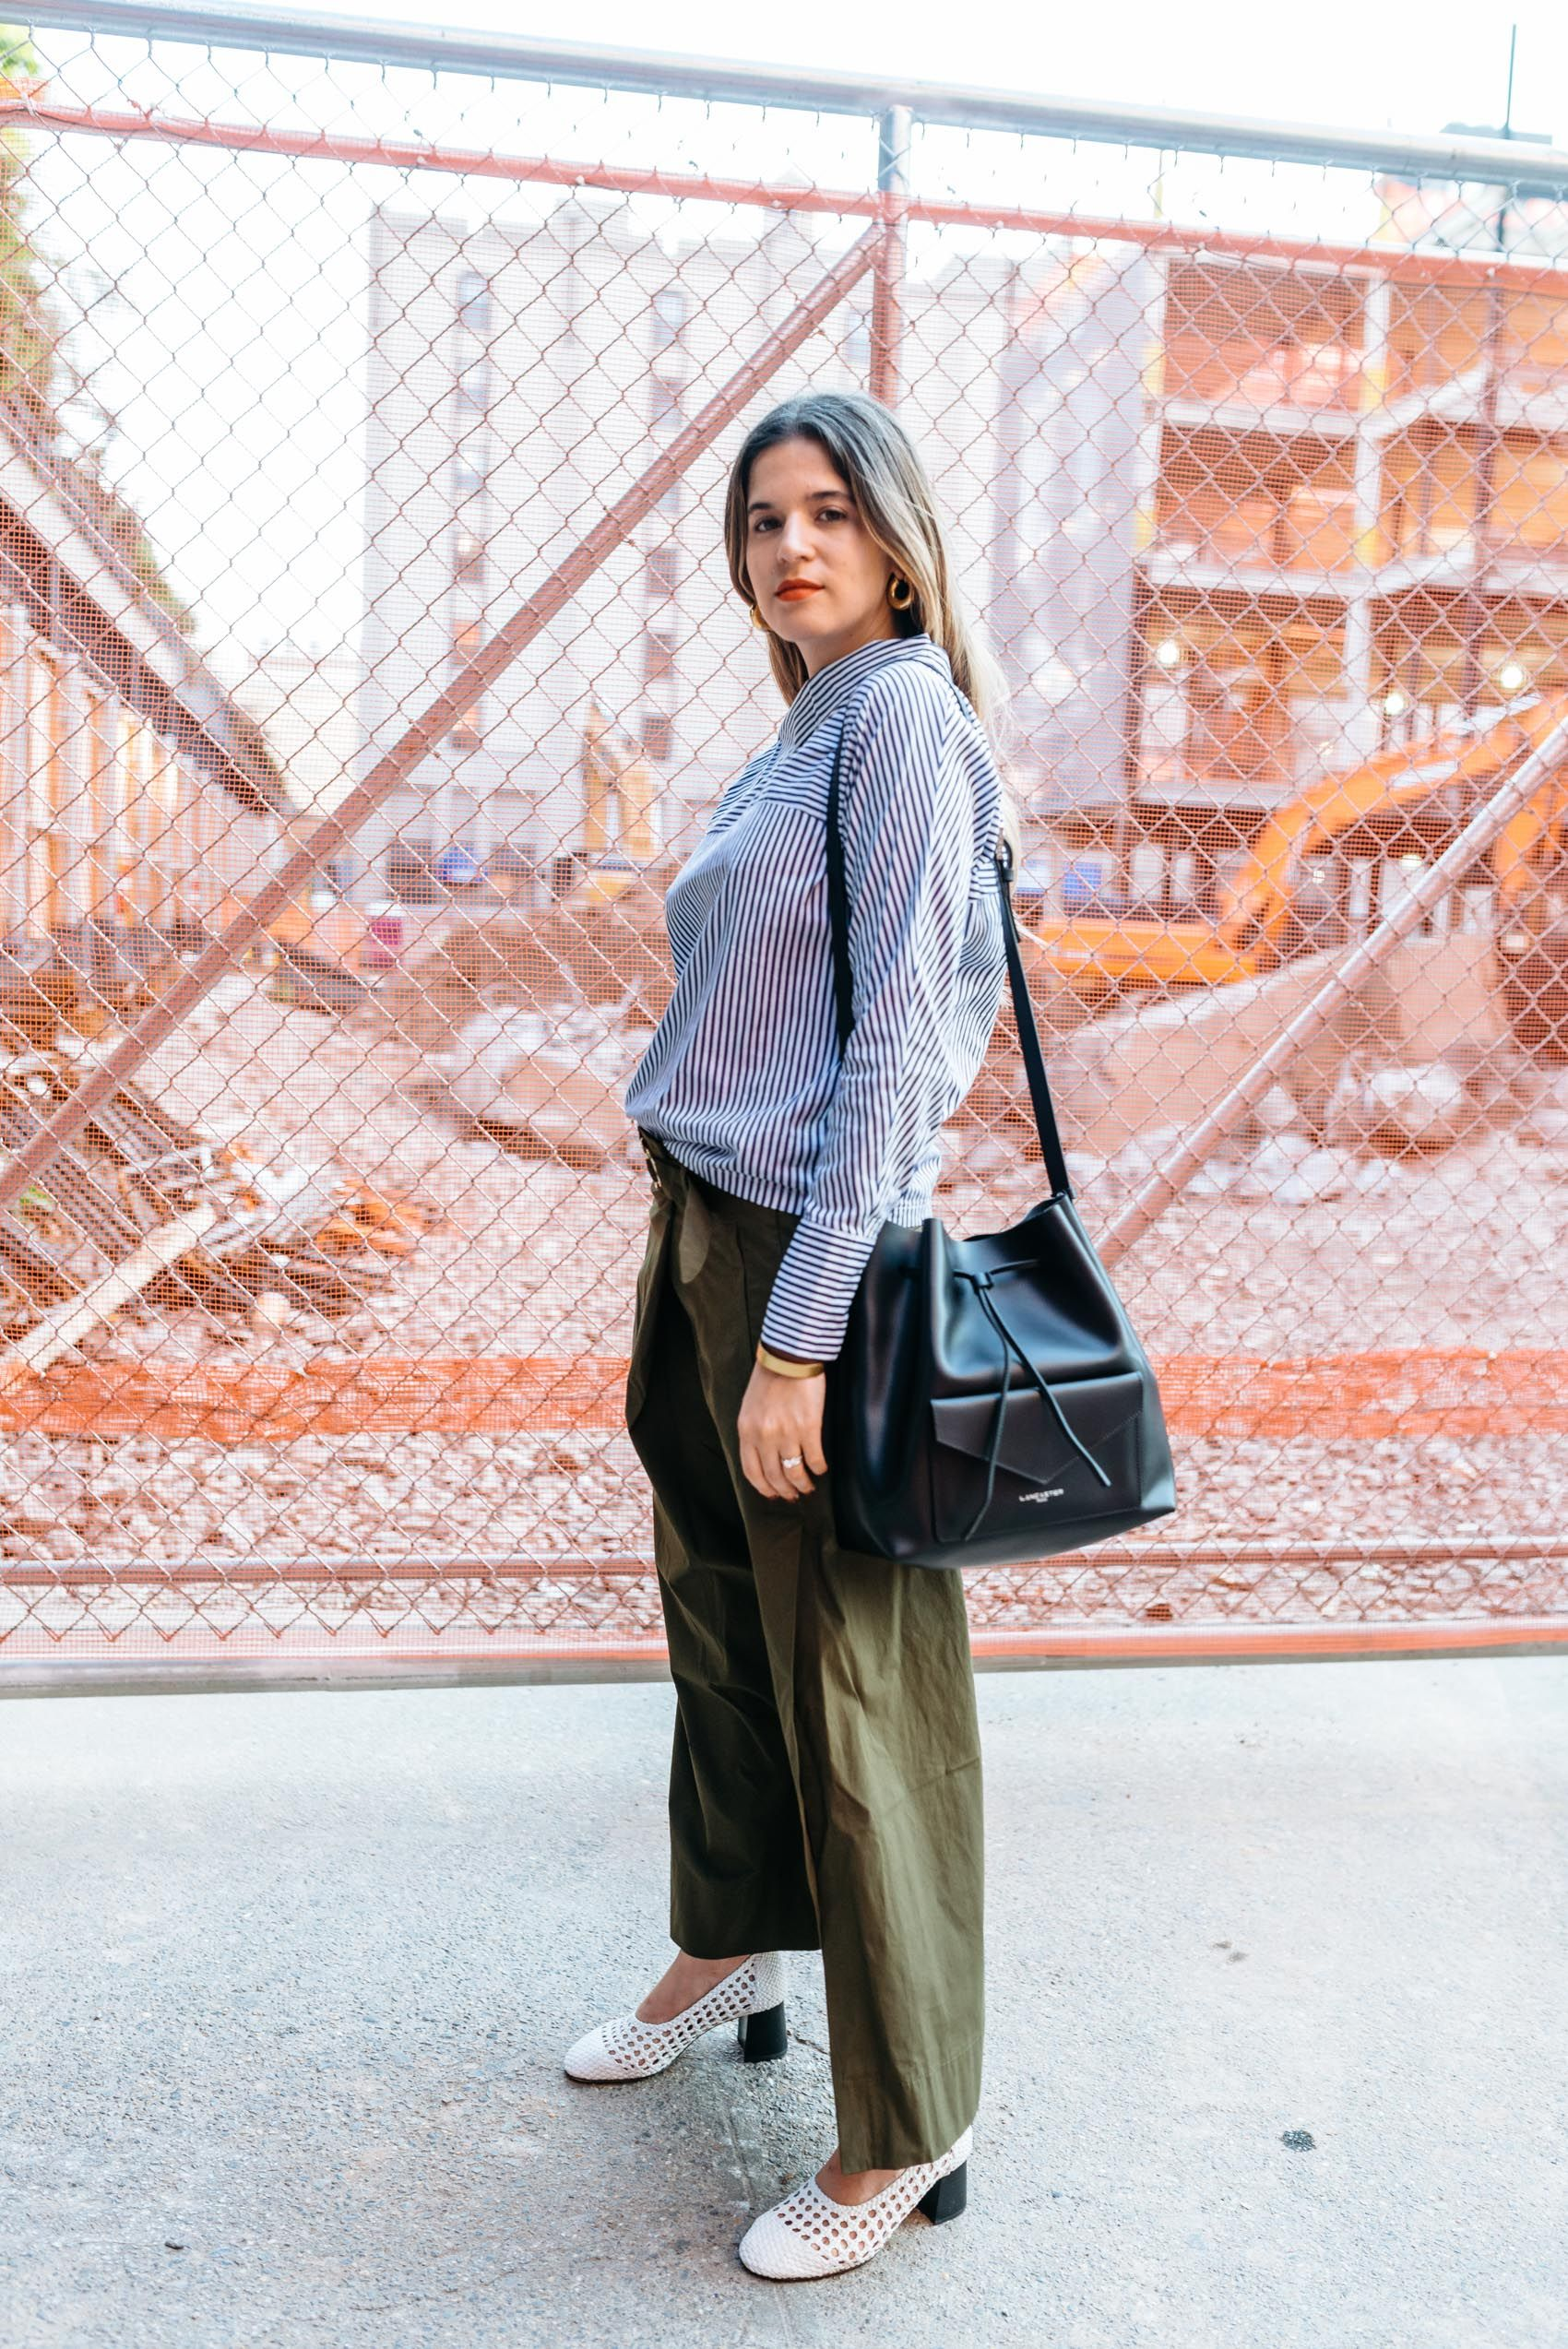 Maristella wears the deconstructed button down shirt trend with Zara olive wide leg pants and white braided leather block heel shoes